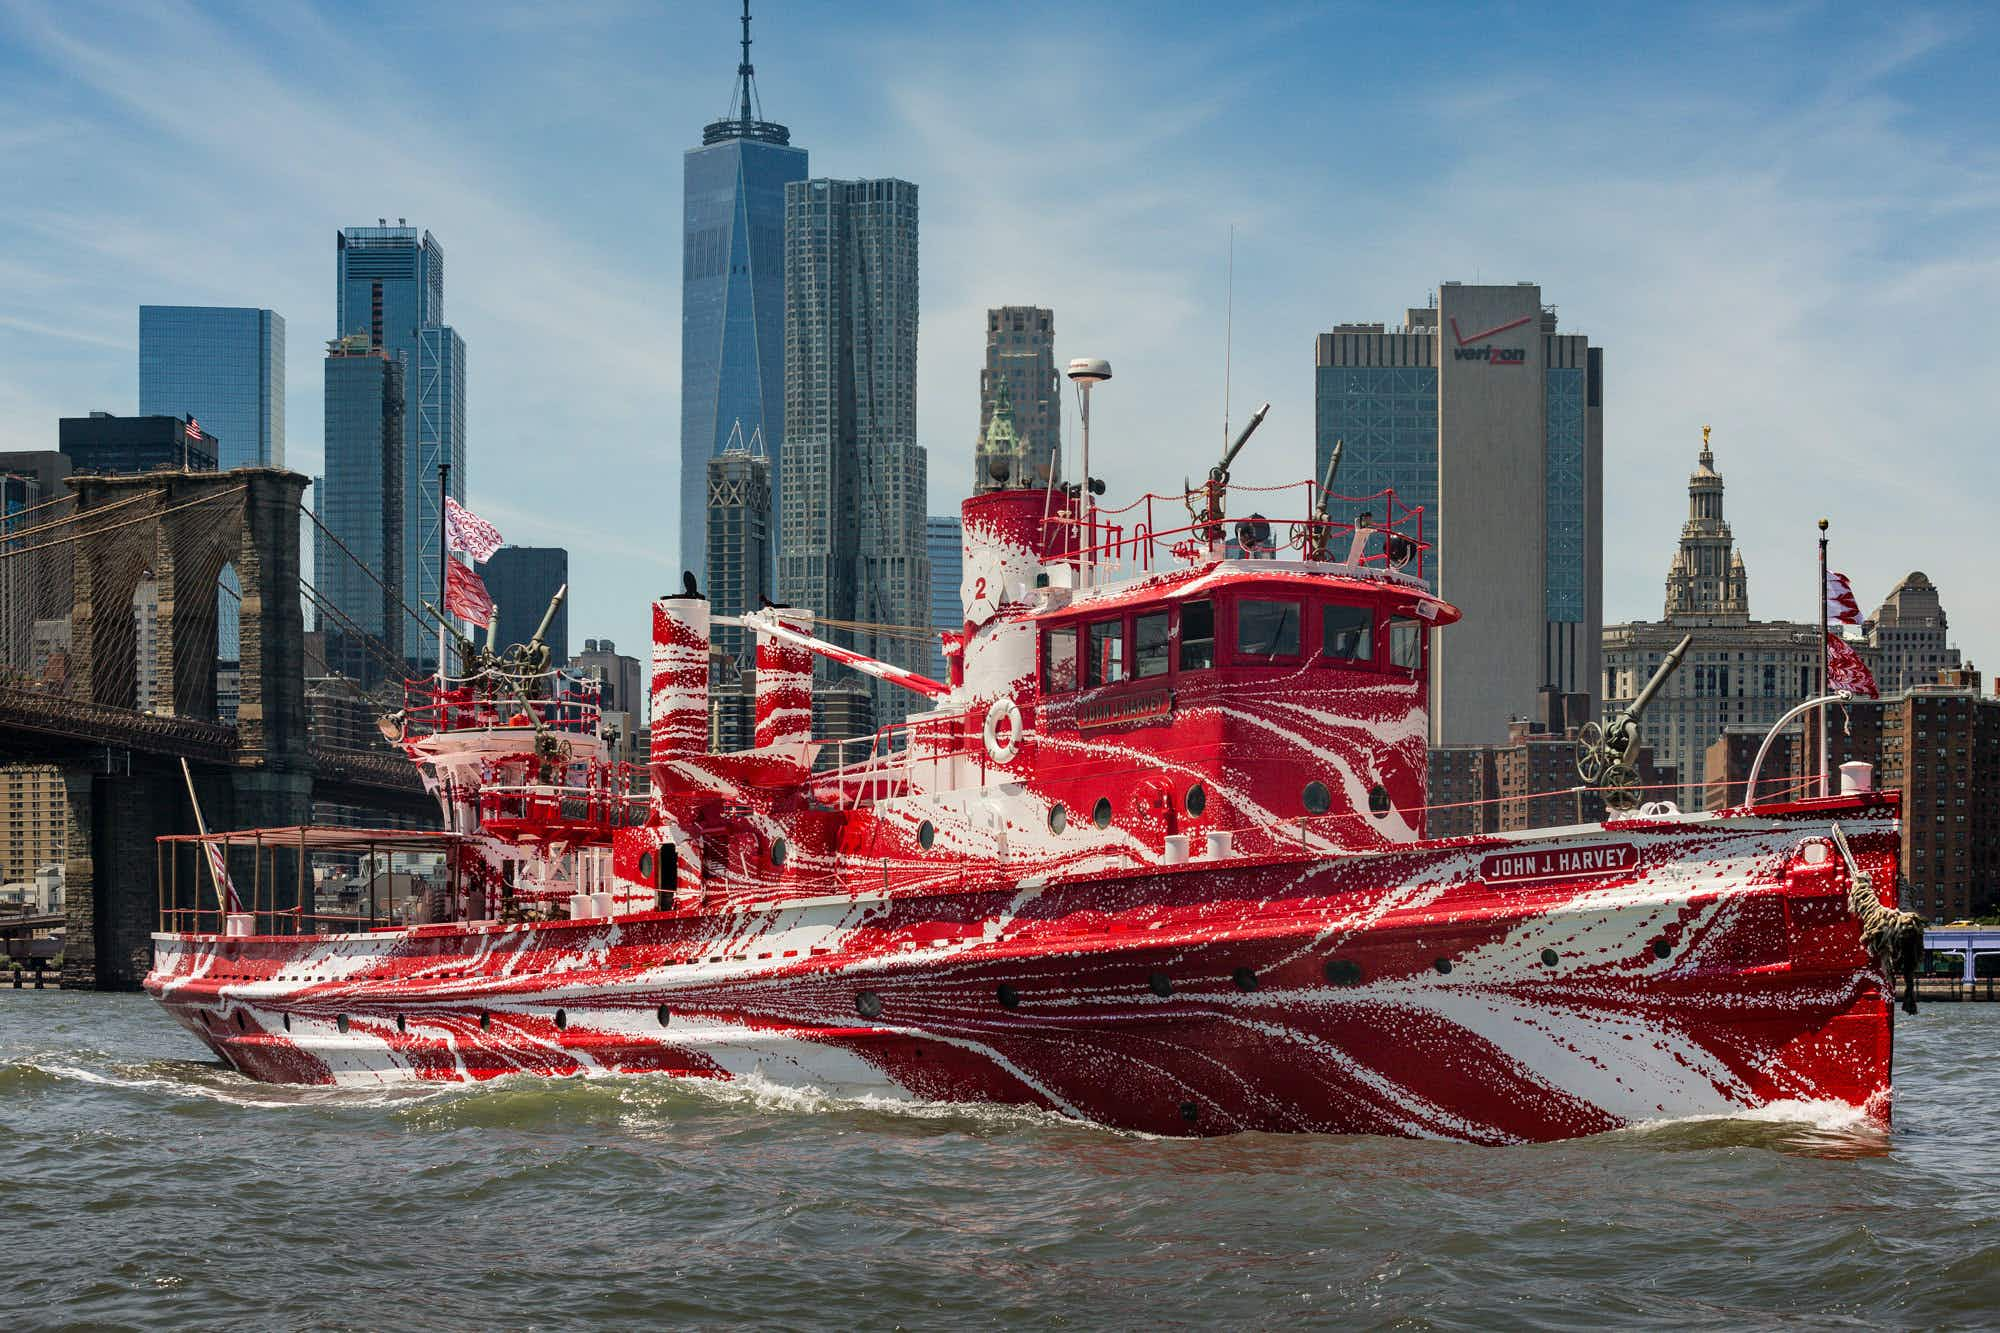 Now's the time to grab a free boat tour of New York